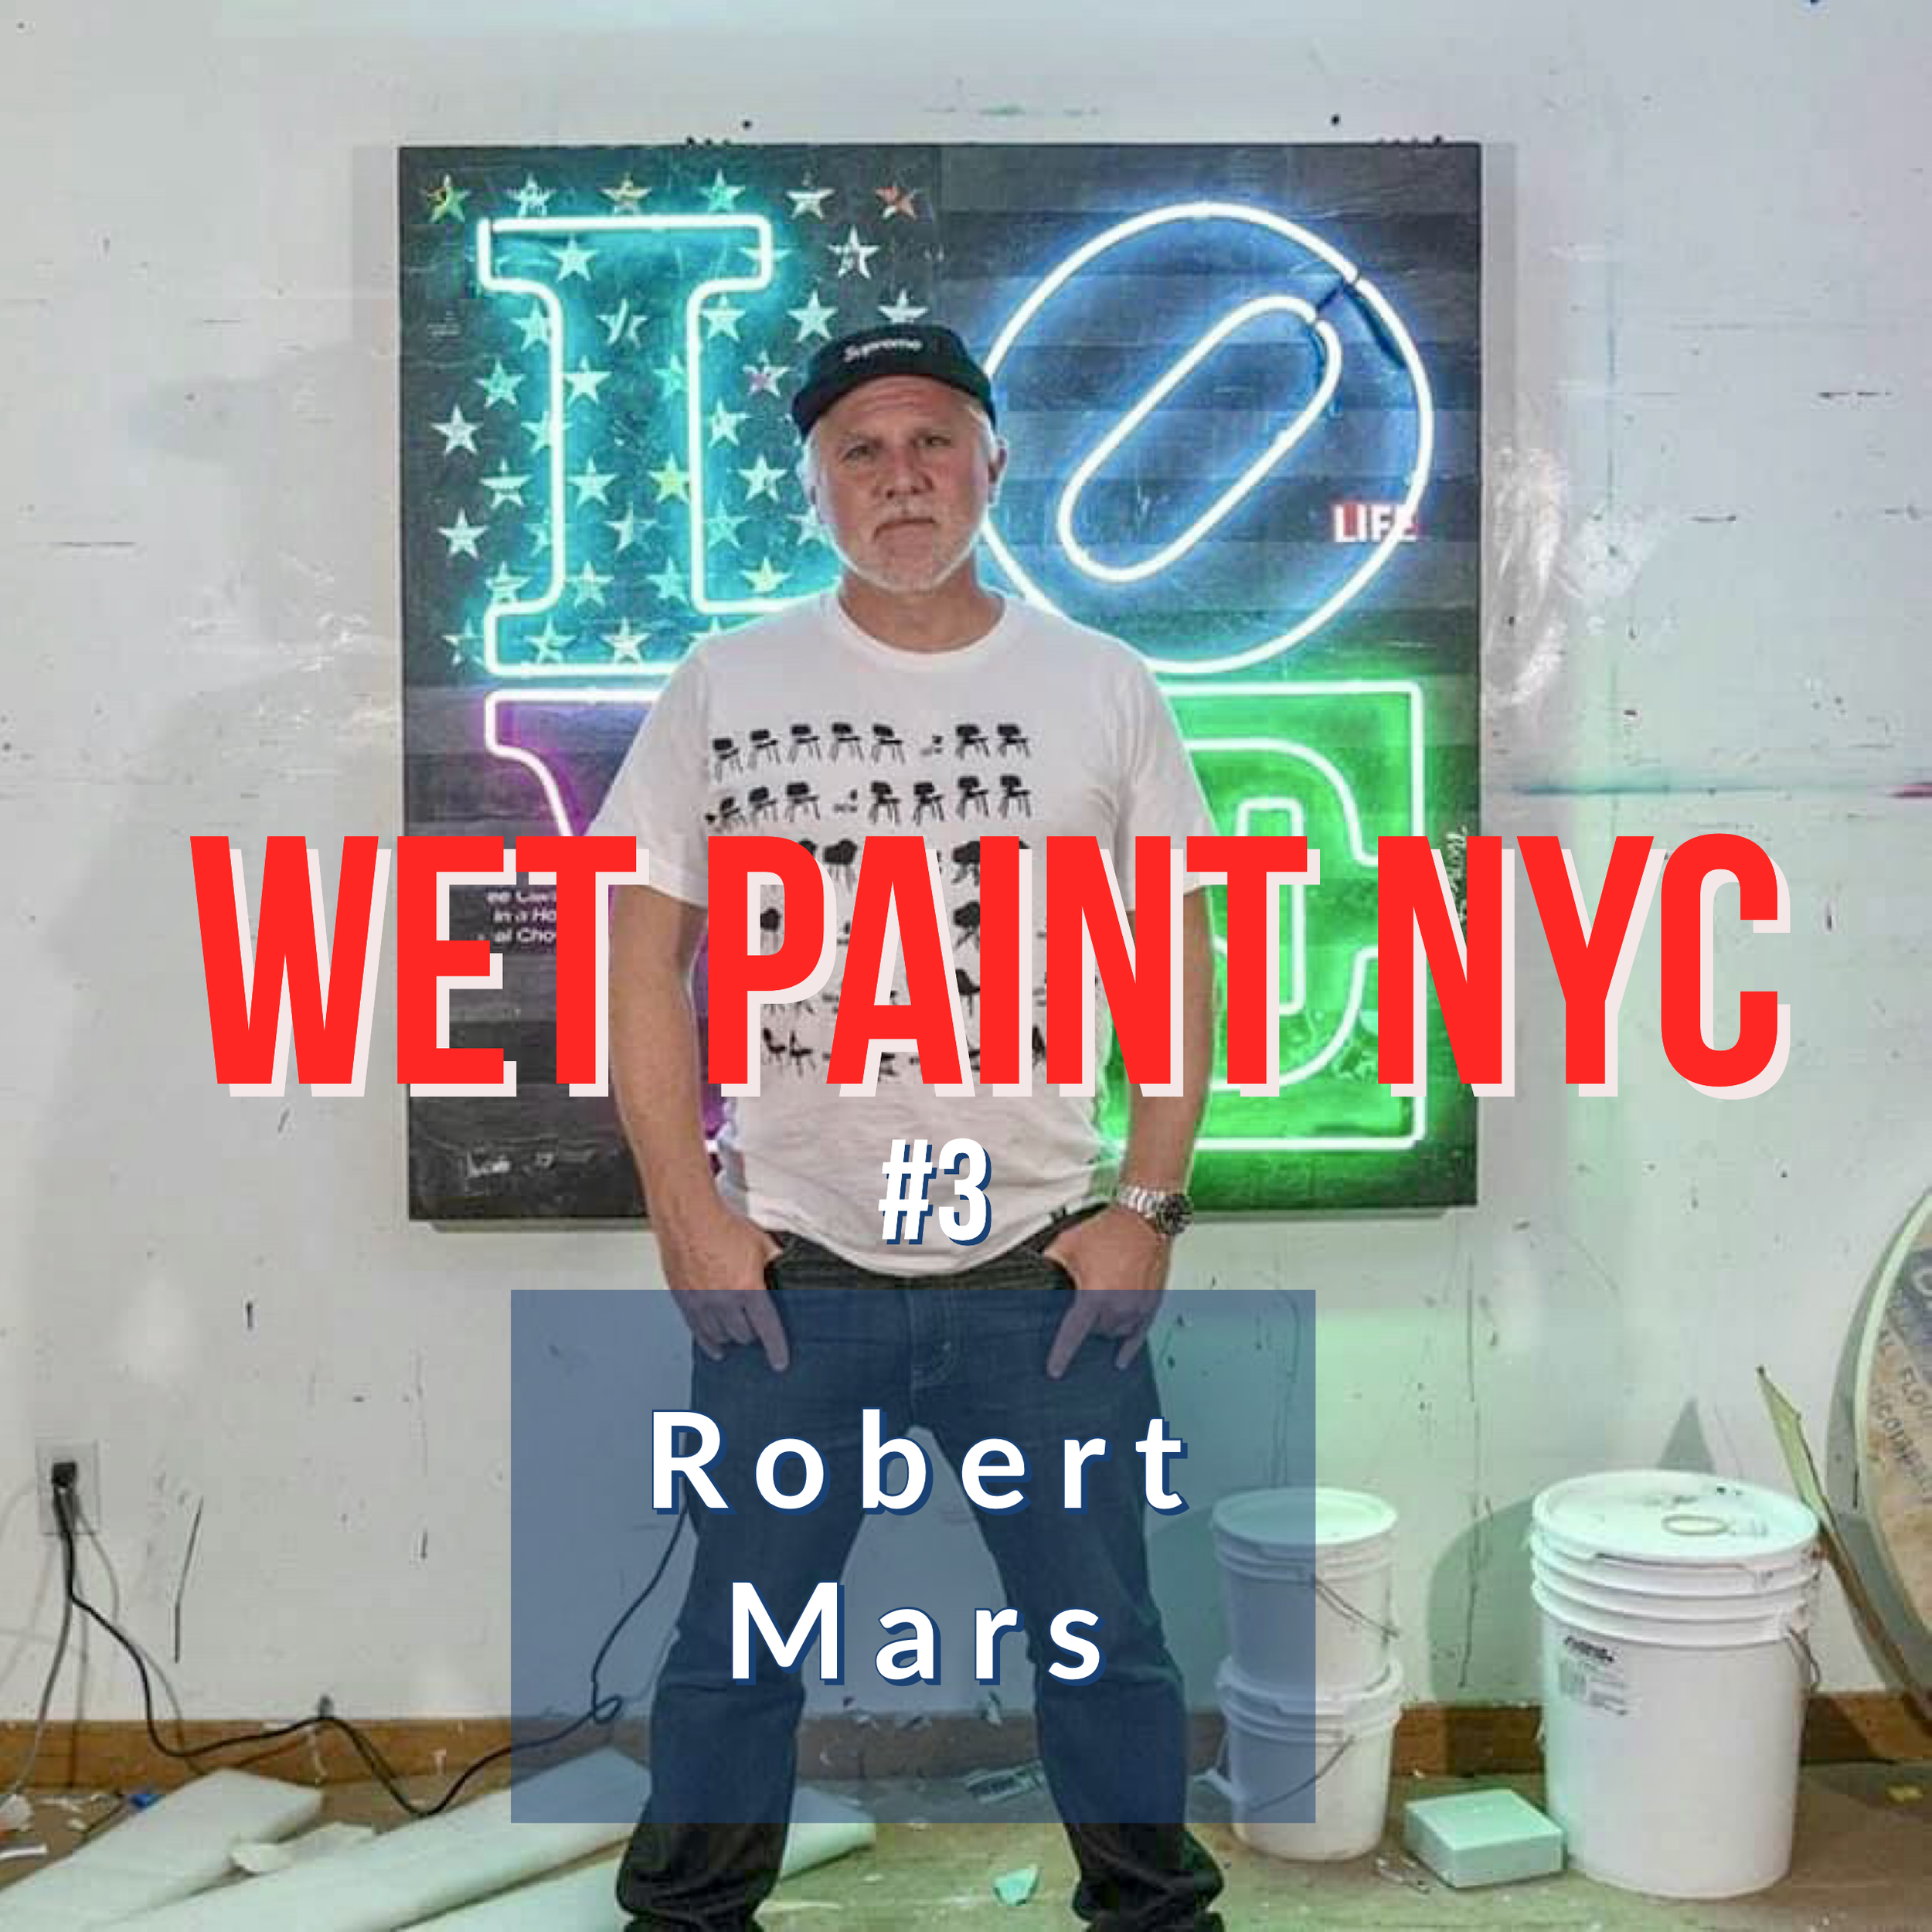 Artist Robert Mars talks about creating a professional practice, artistic breakthroughs and the art world.